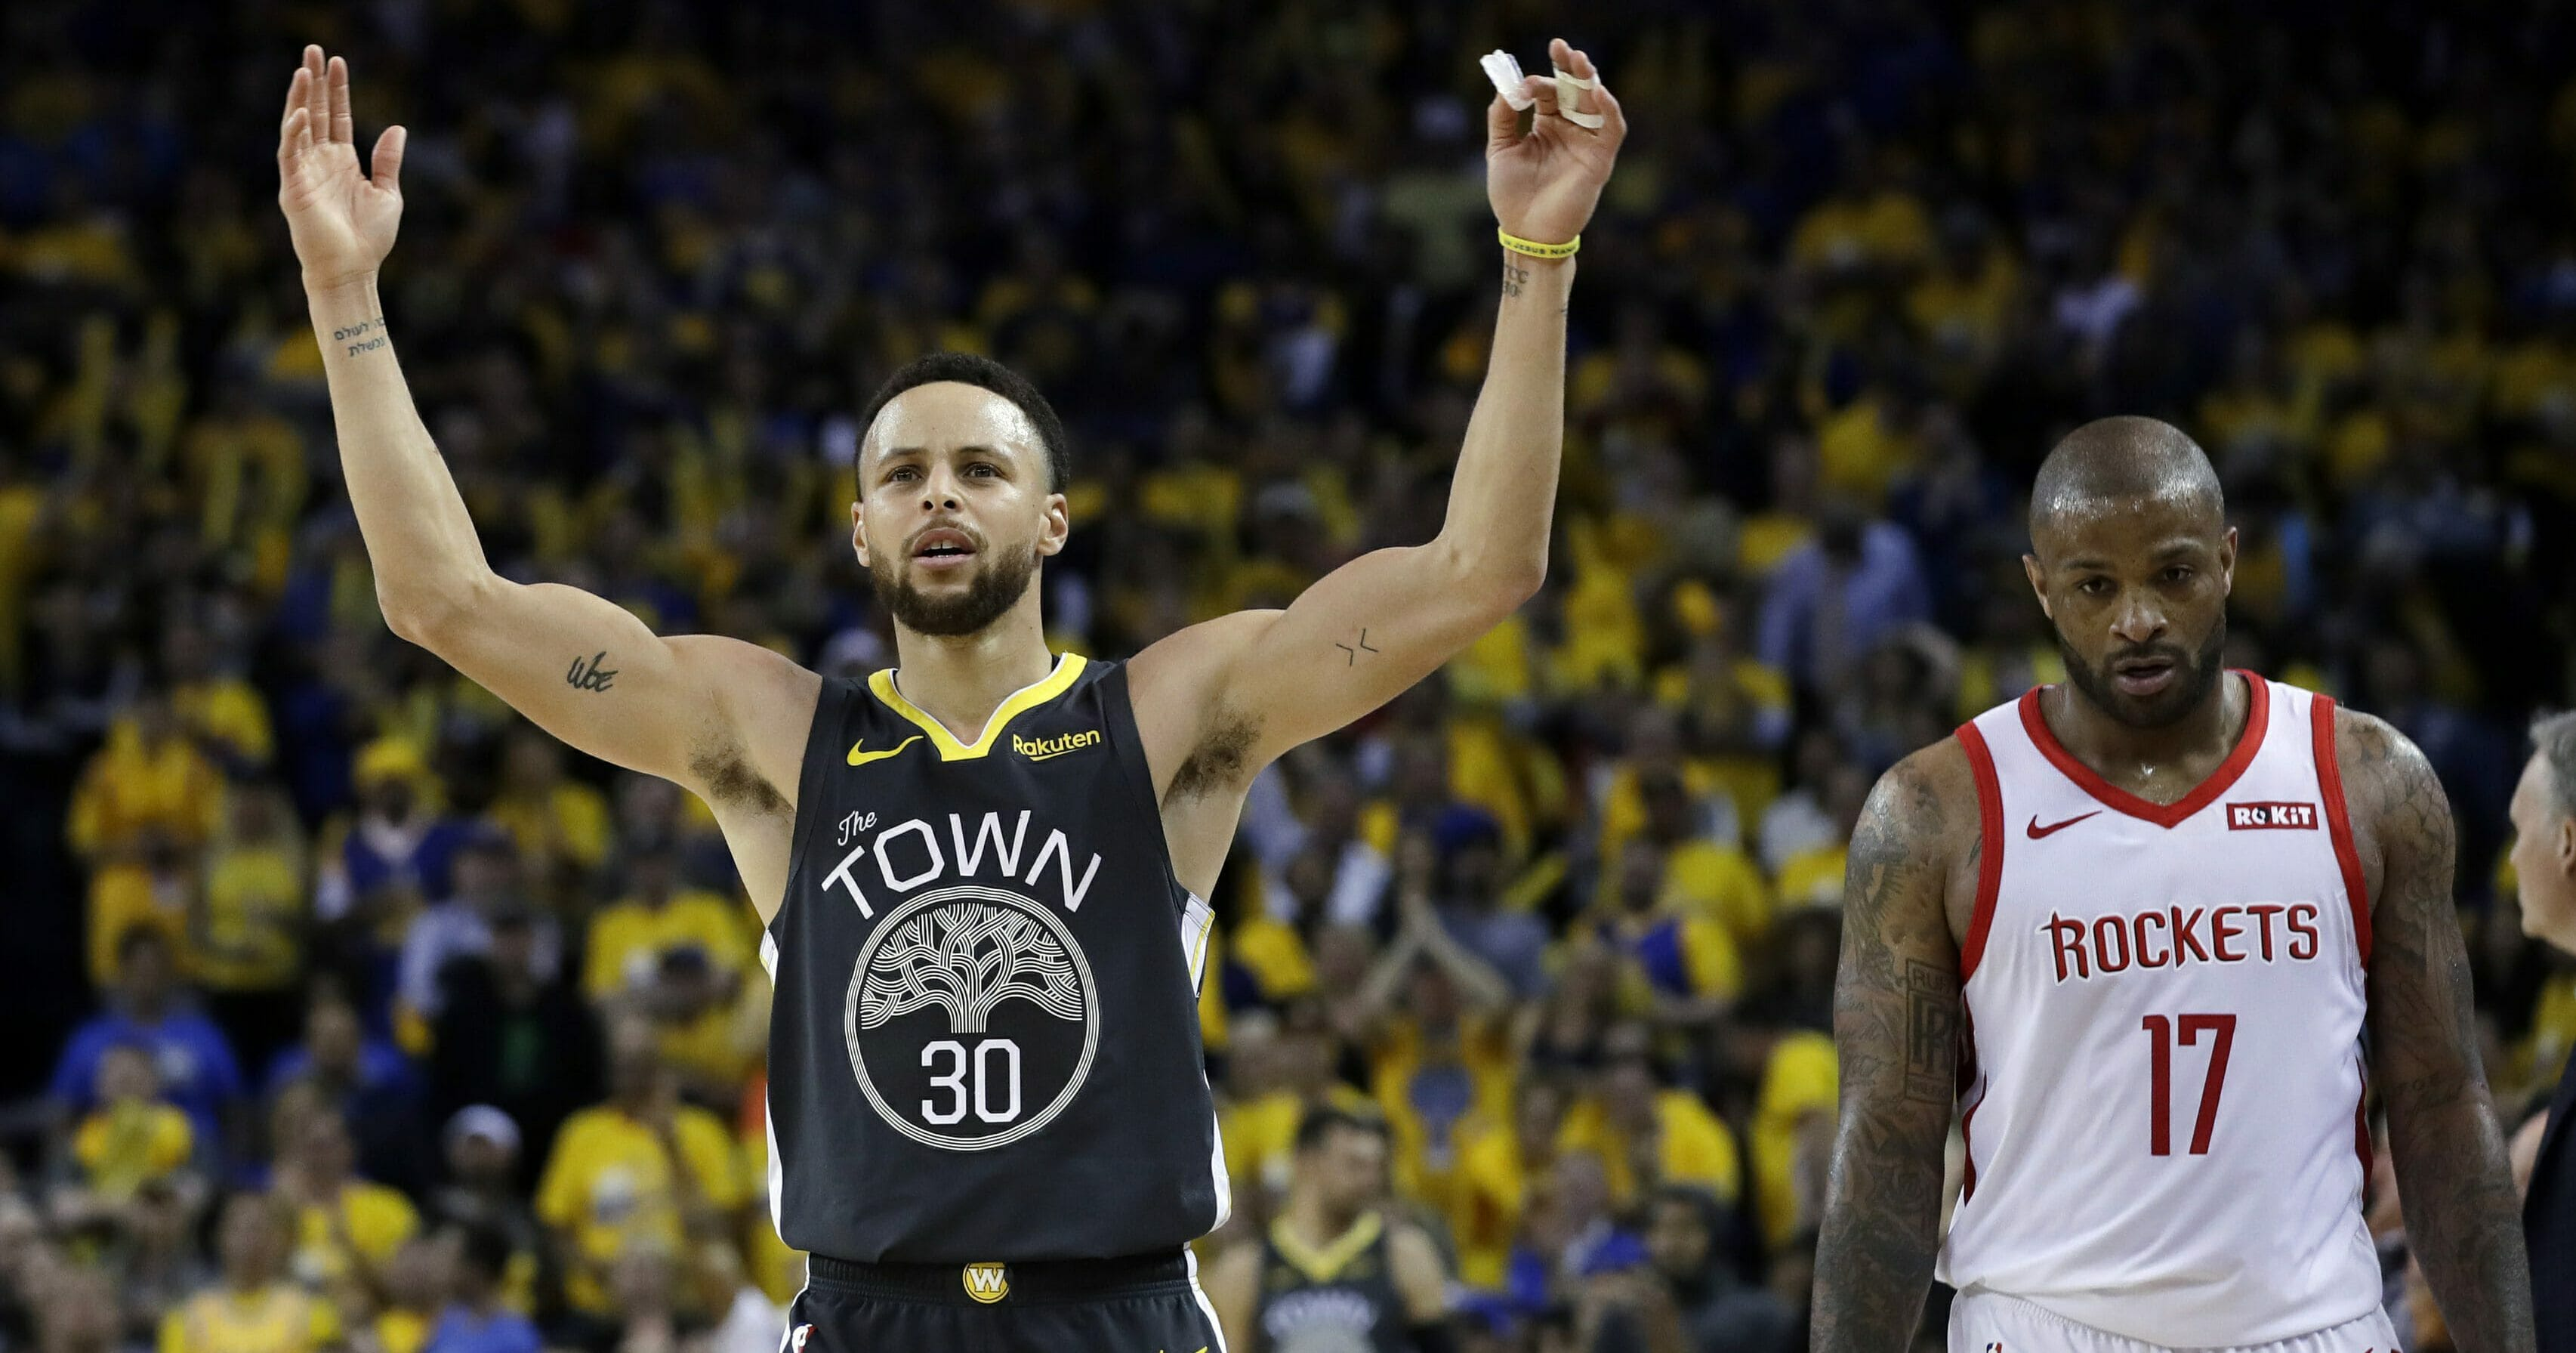 The Golden State Warriors' Stephen Curry, left, celebrates next to the Houston Rockets' P.J. Tucker.